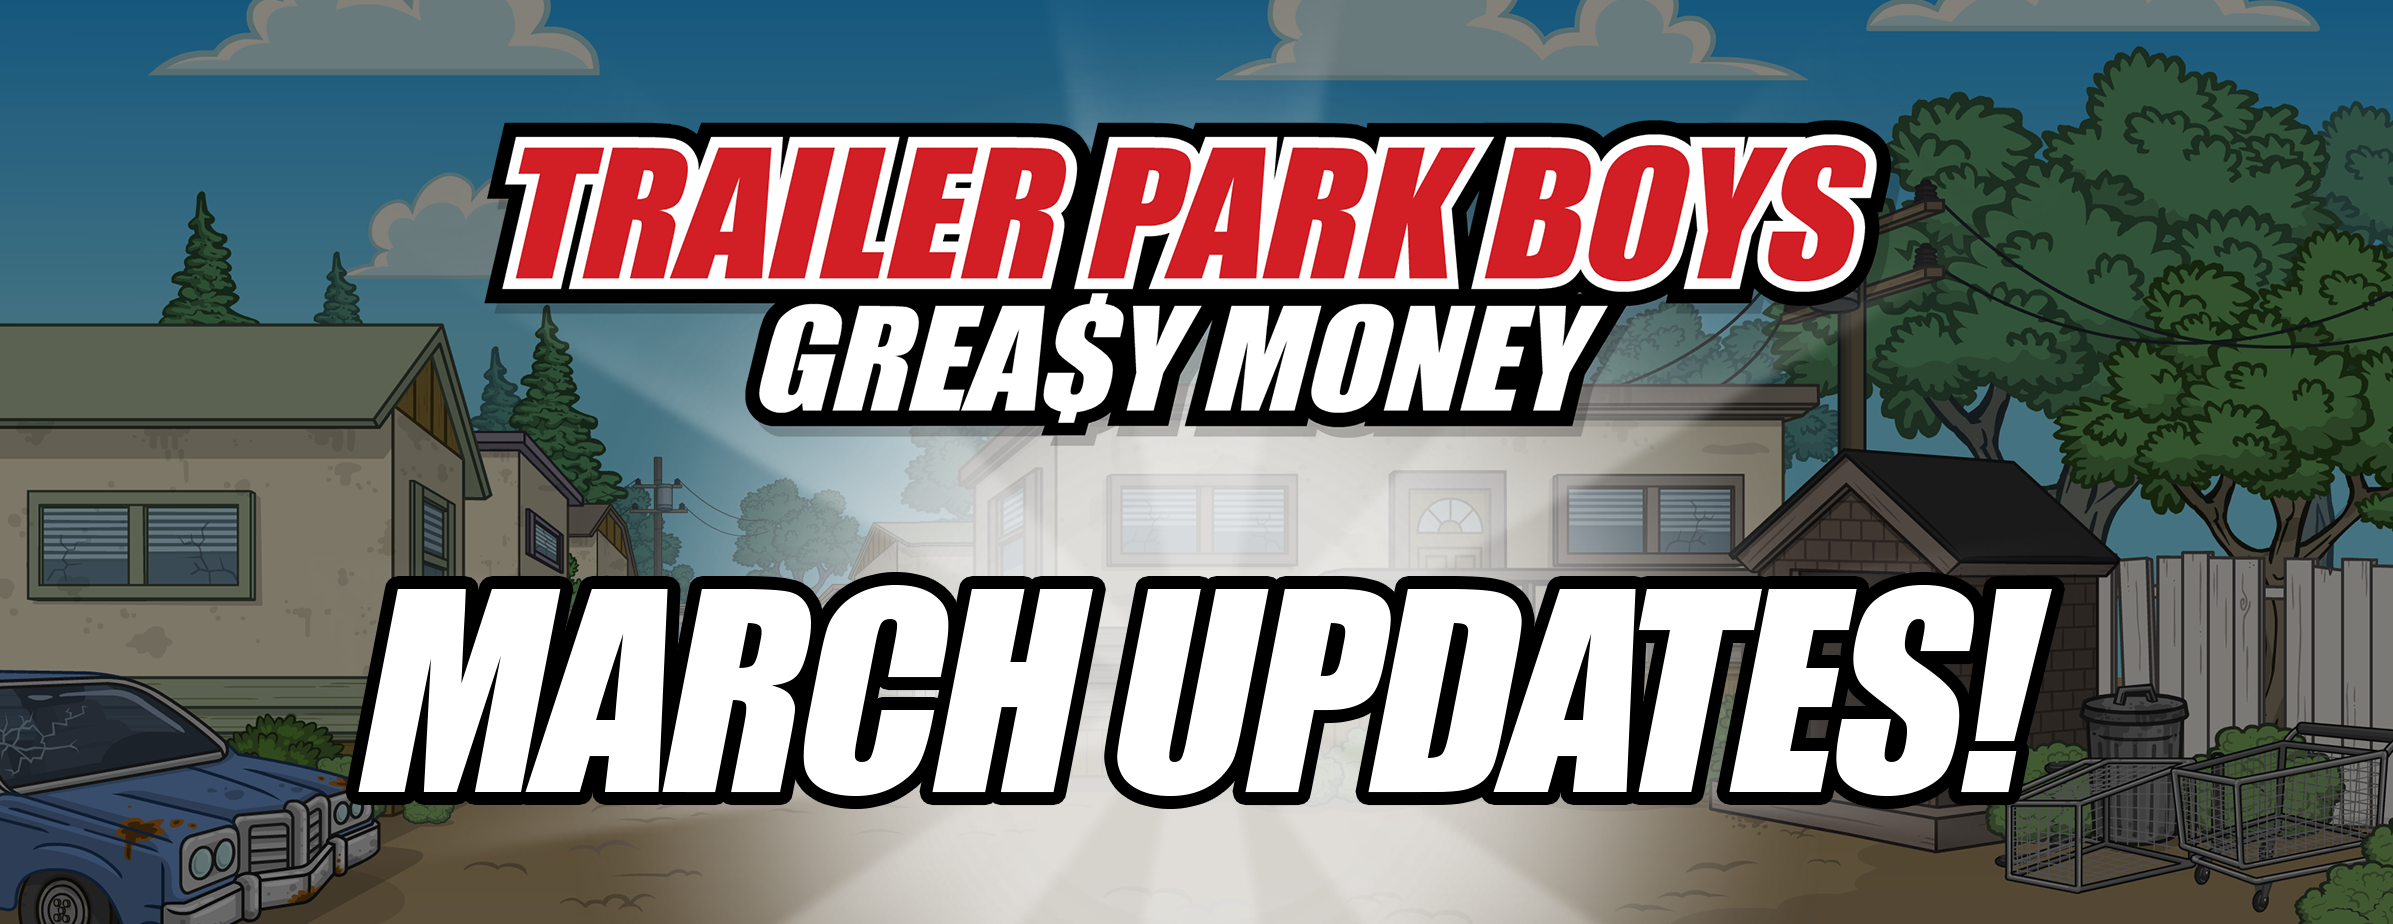 Trailer Park Boys: March Events!